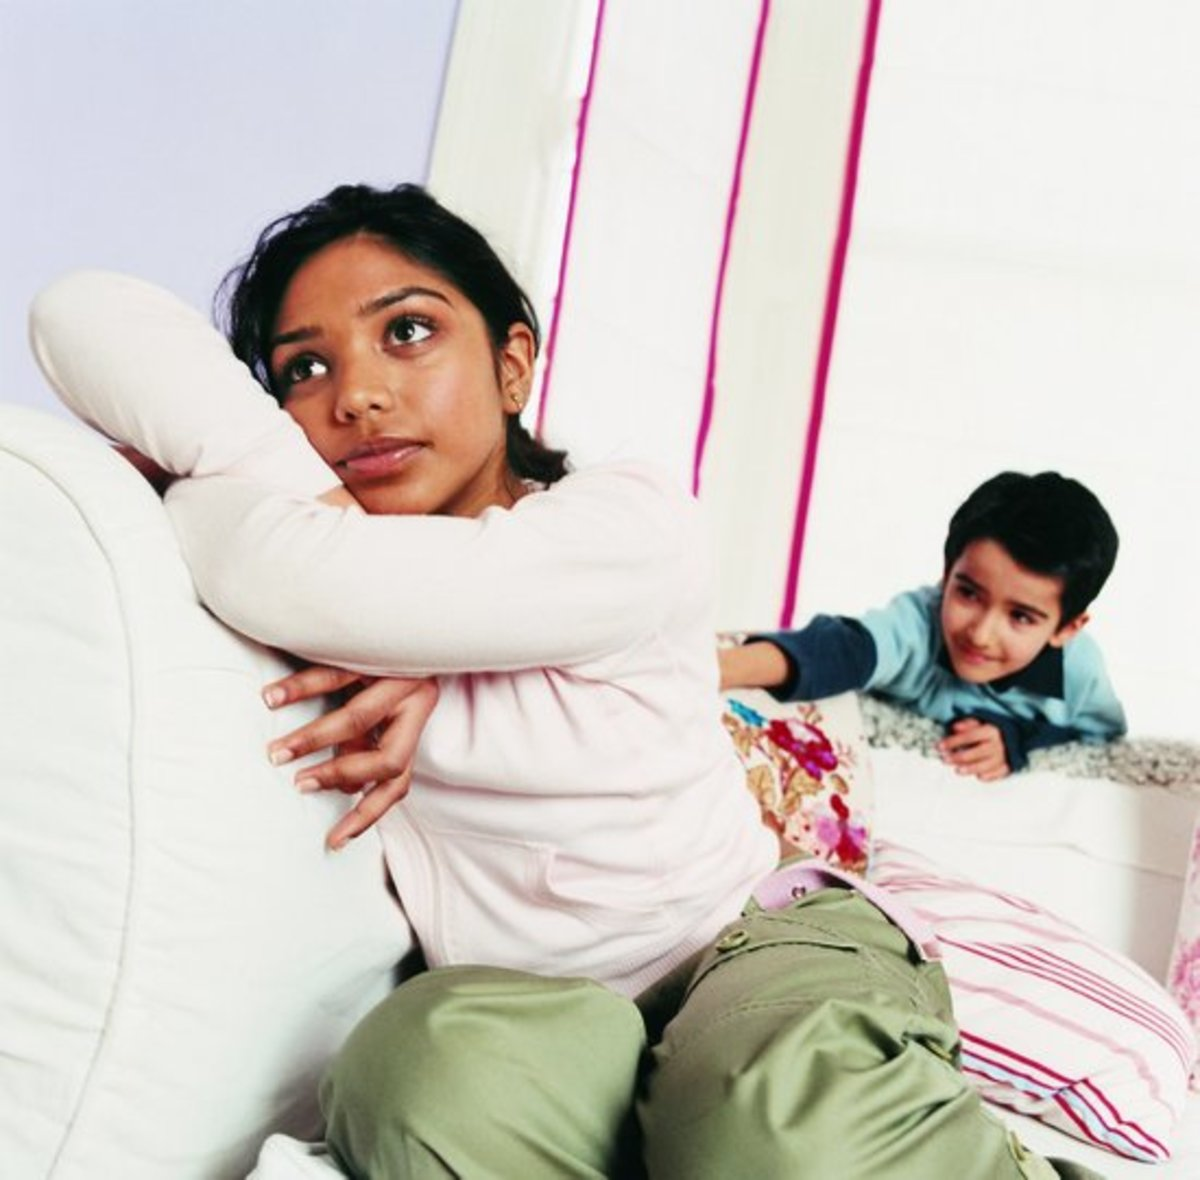 There is an unspoken expectation that oldest siblings parent younger siblings.  There are parents who contend that why should they raise children when their oldest children have the maturity to do the job as well as being part of the family.